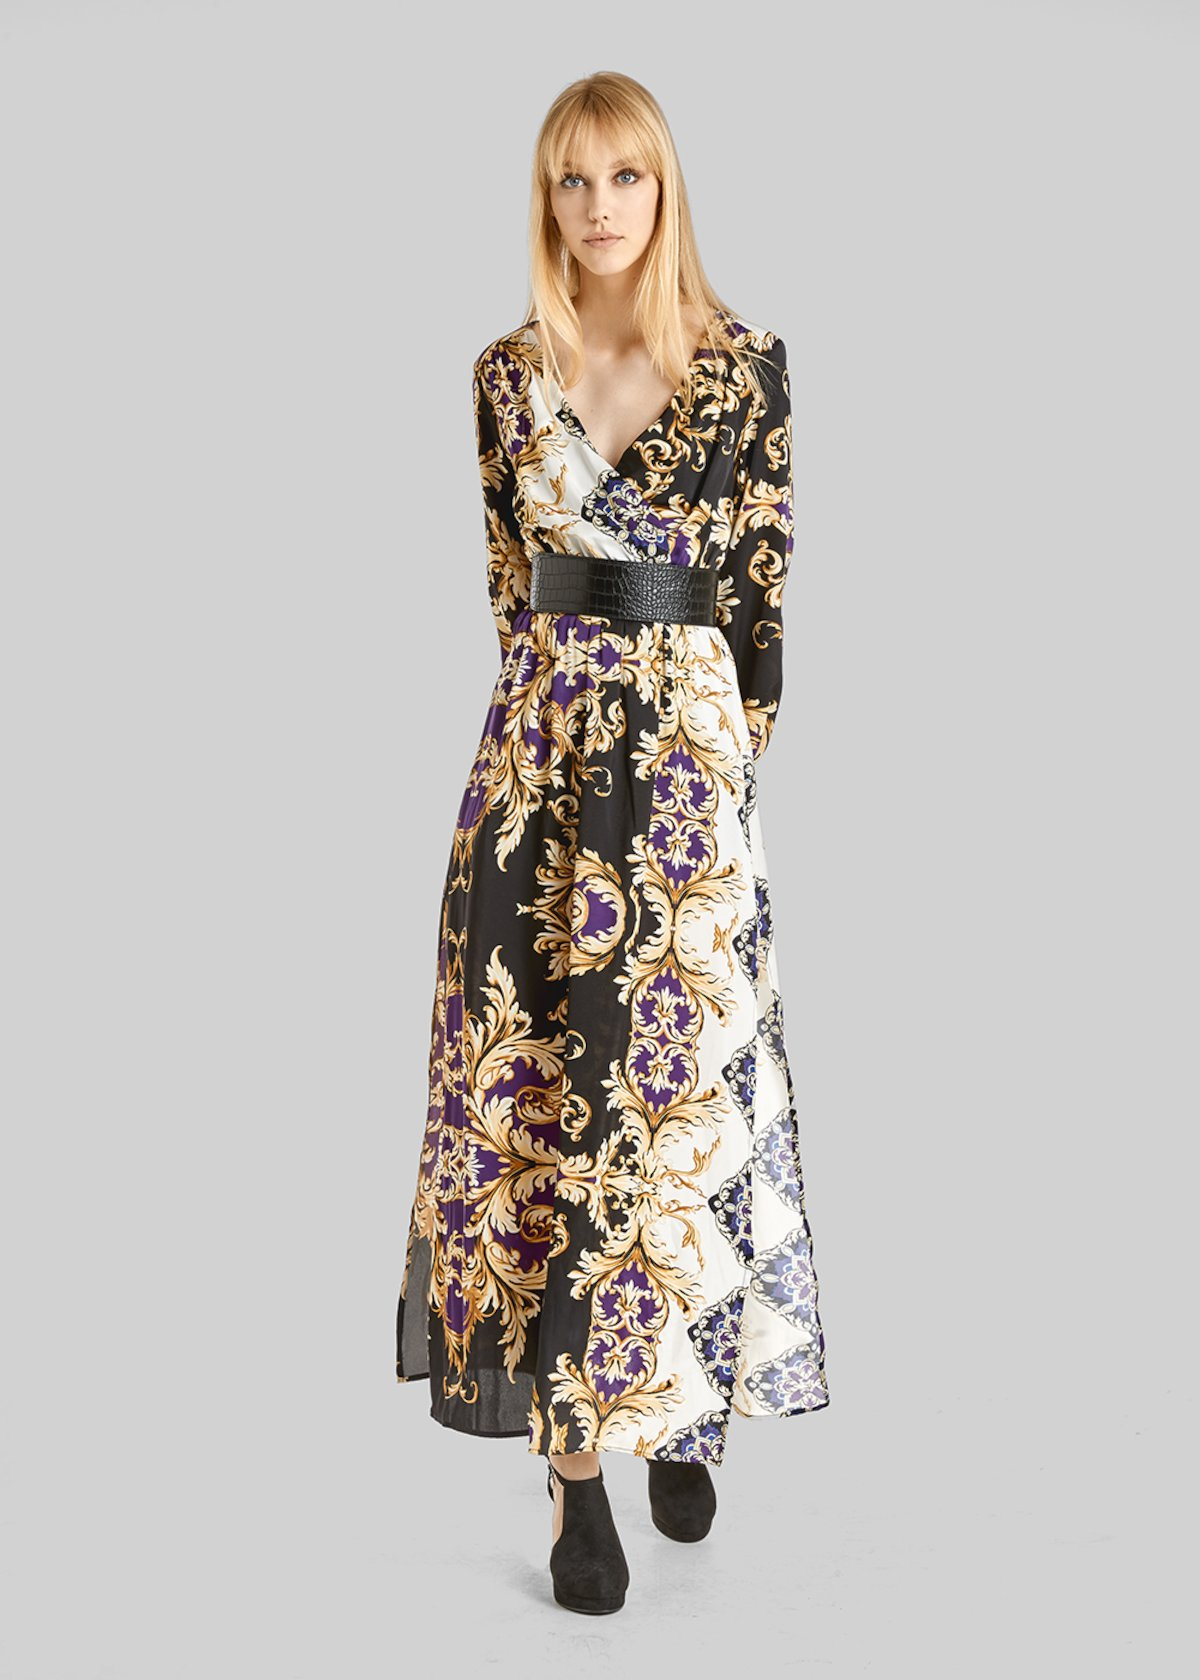 Adid long baroque fantasy dress